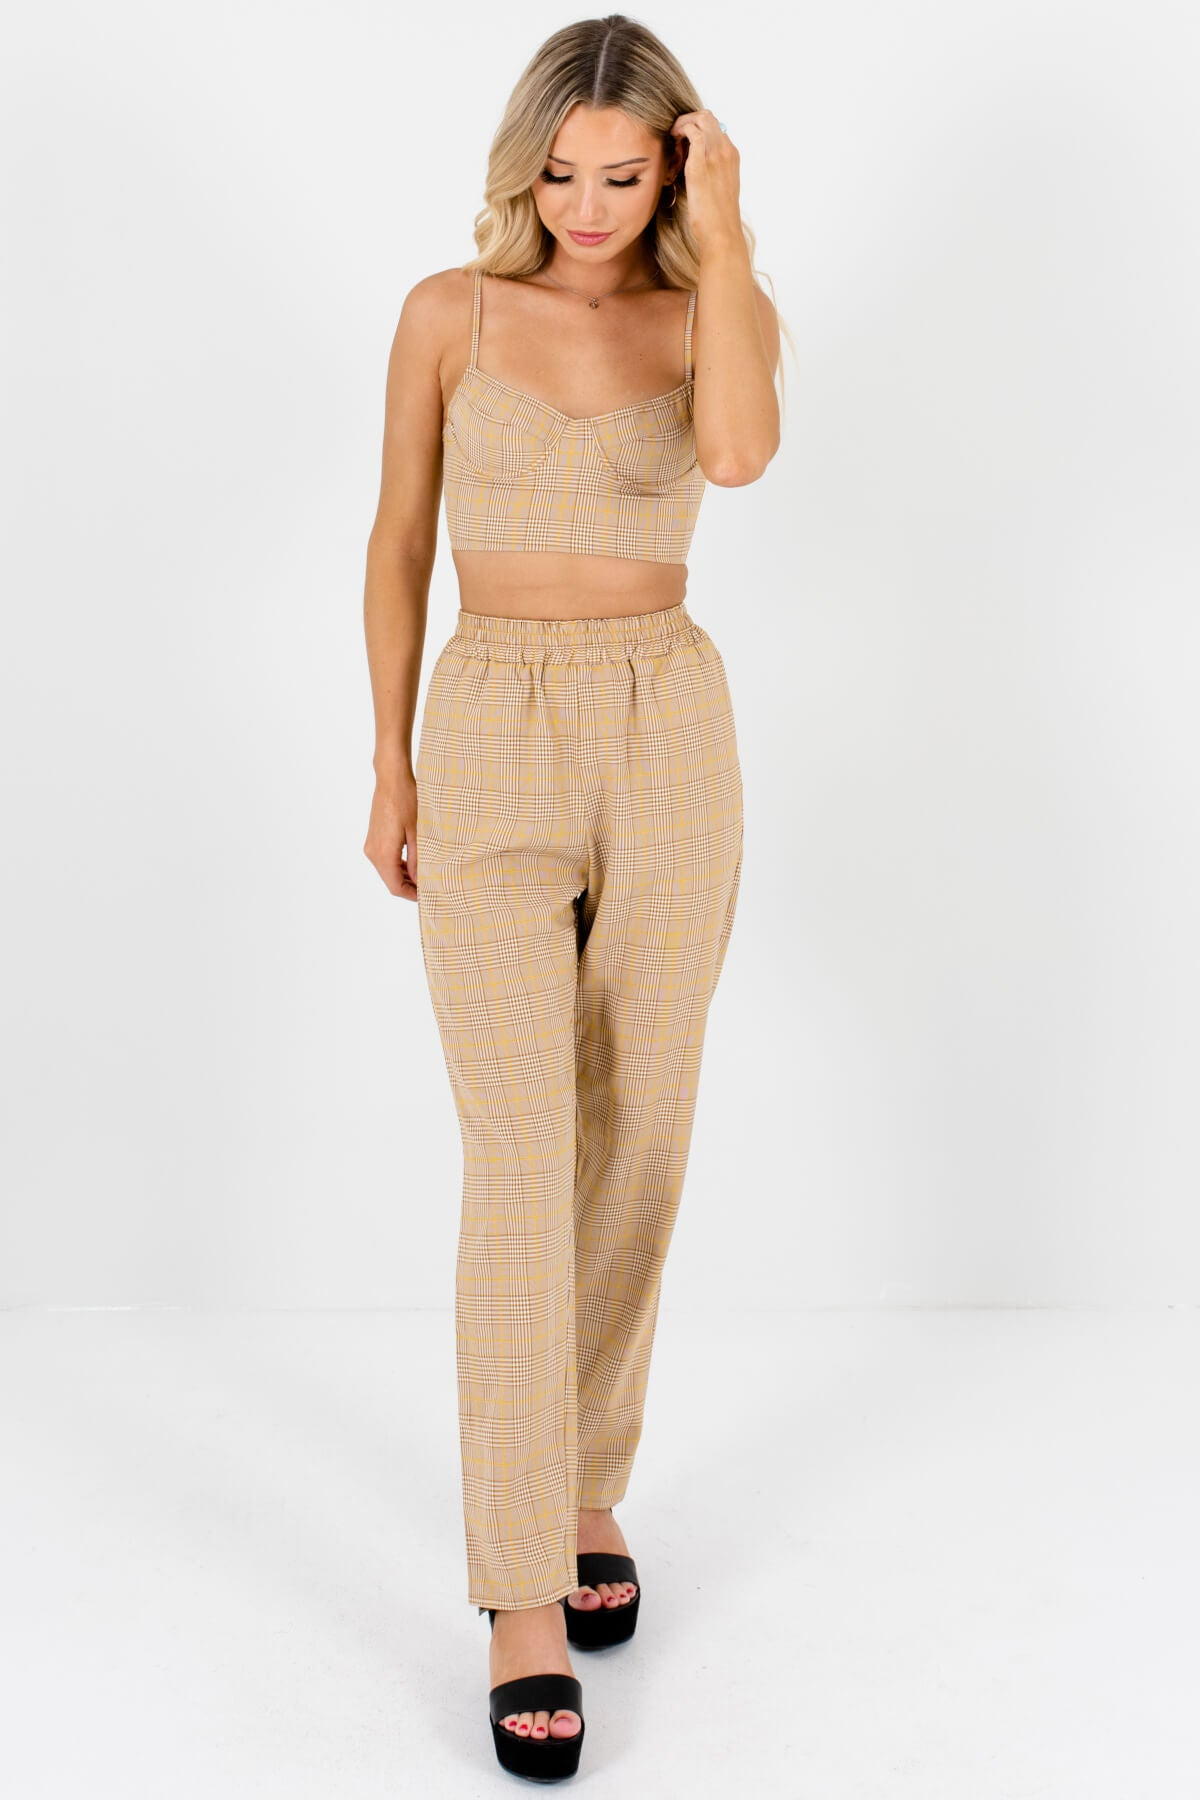 Brown White Yellow Plaid Two-Piece Crop Top and Pants Set